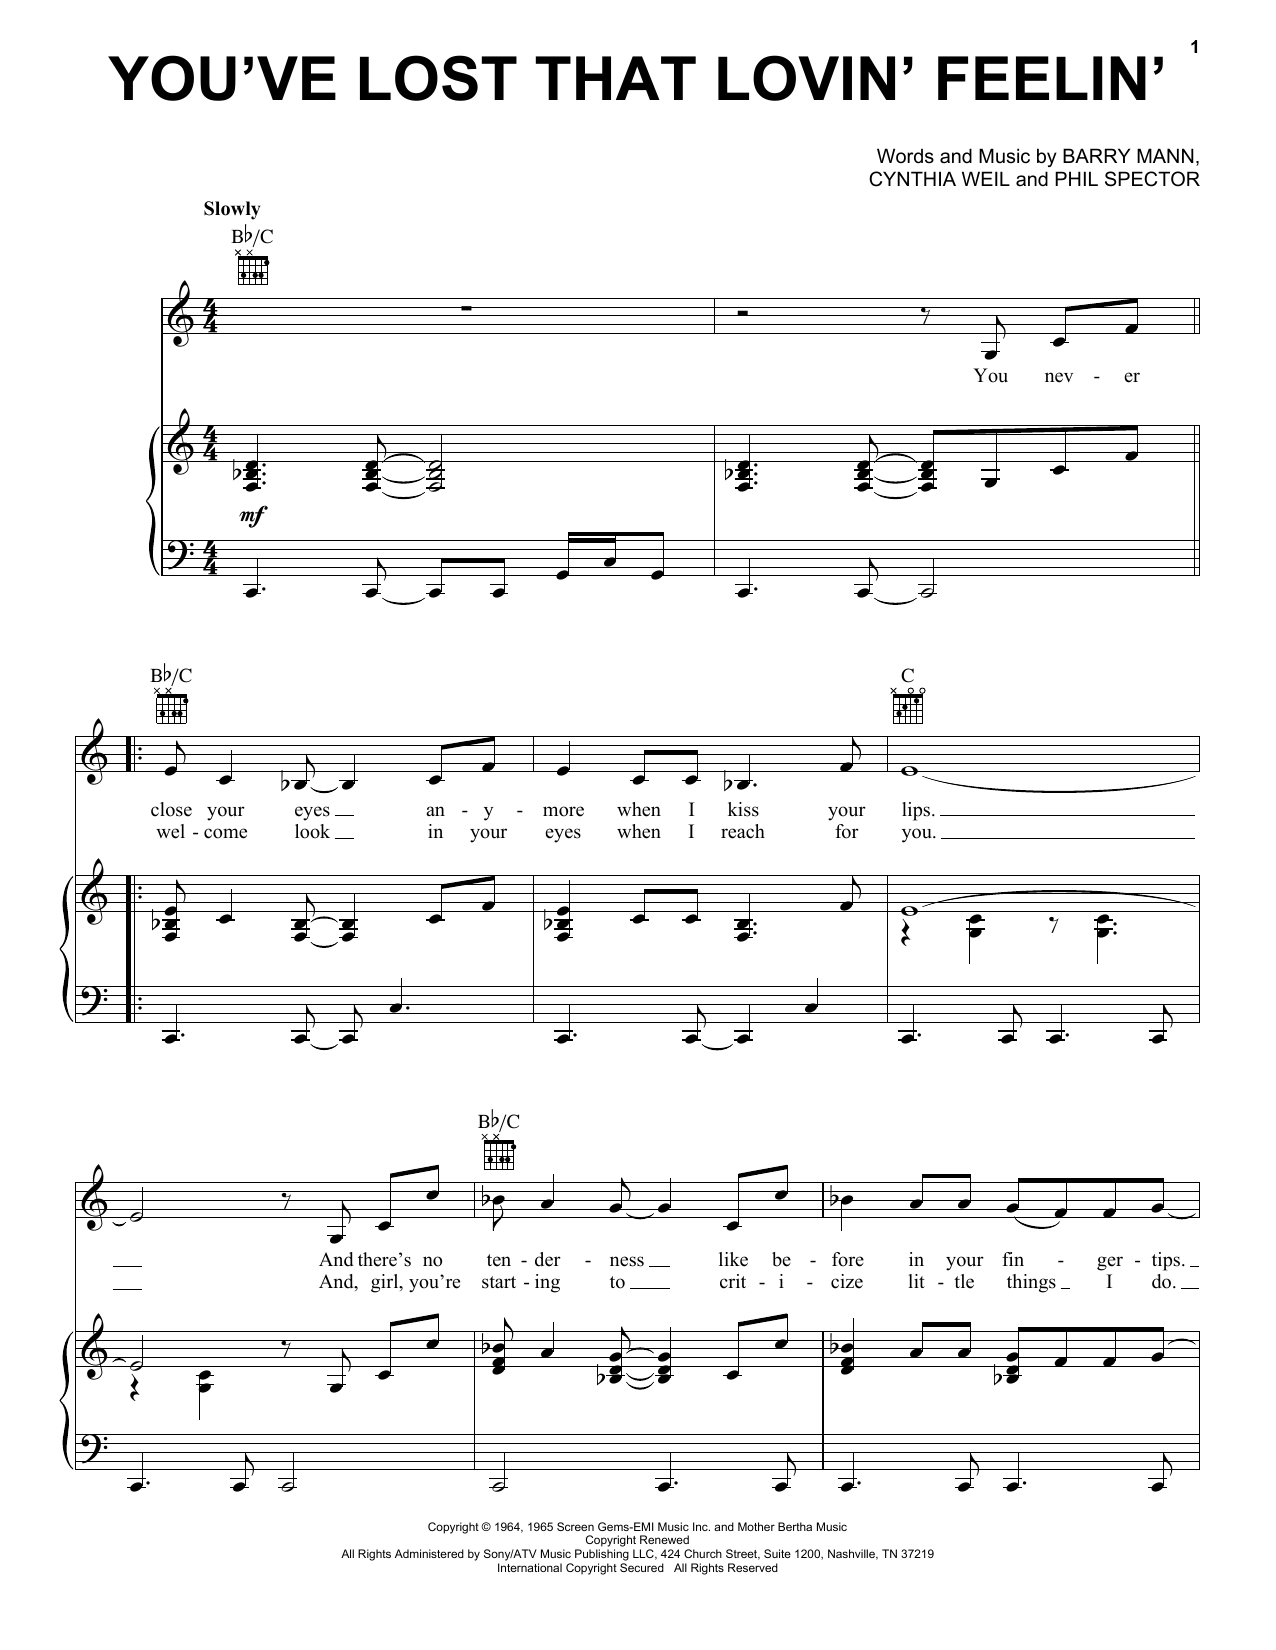 Elvis Presley You've Lost That Lovin' Feelin' sheet music notes and chords